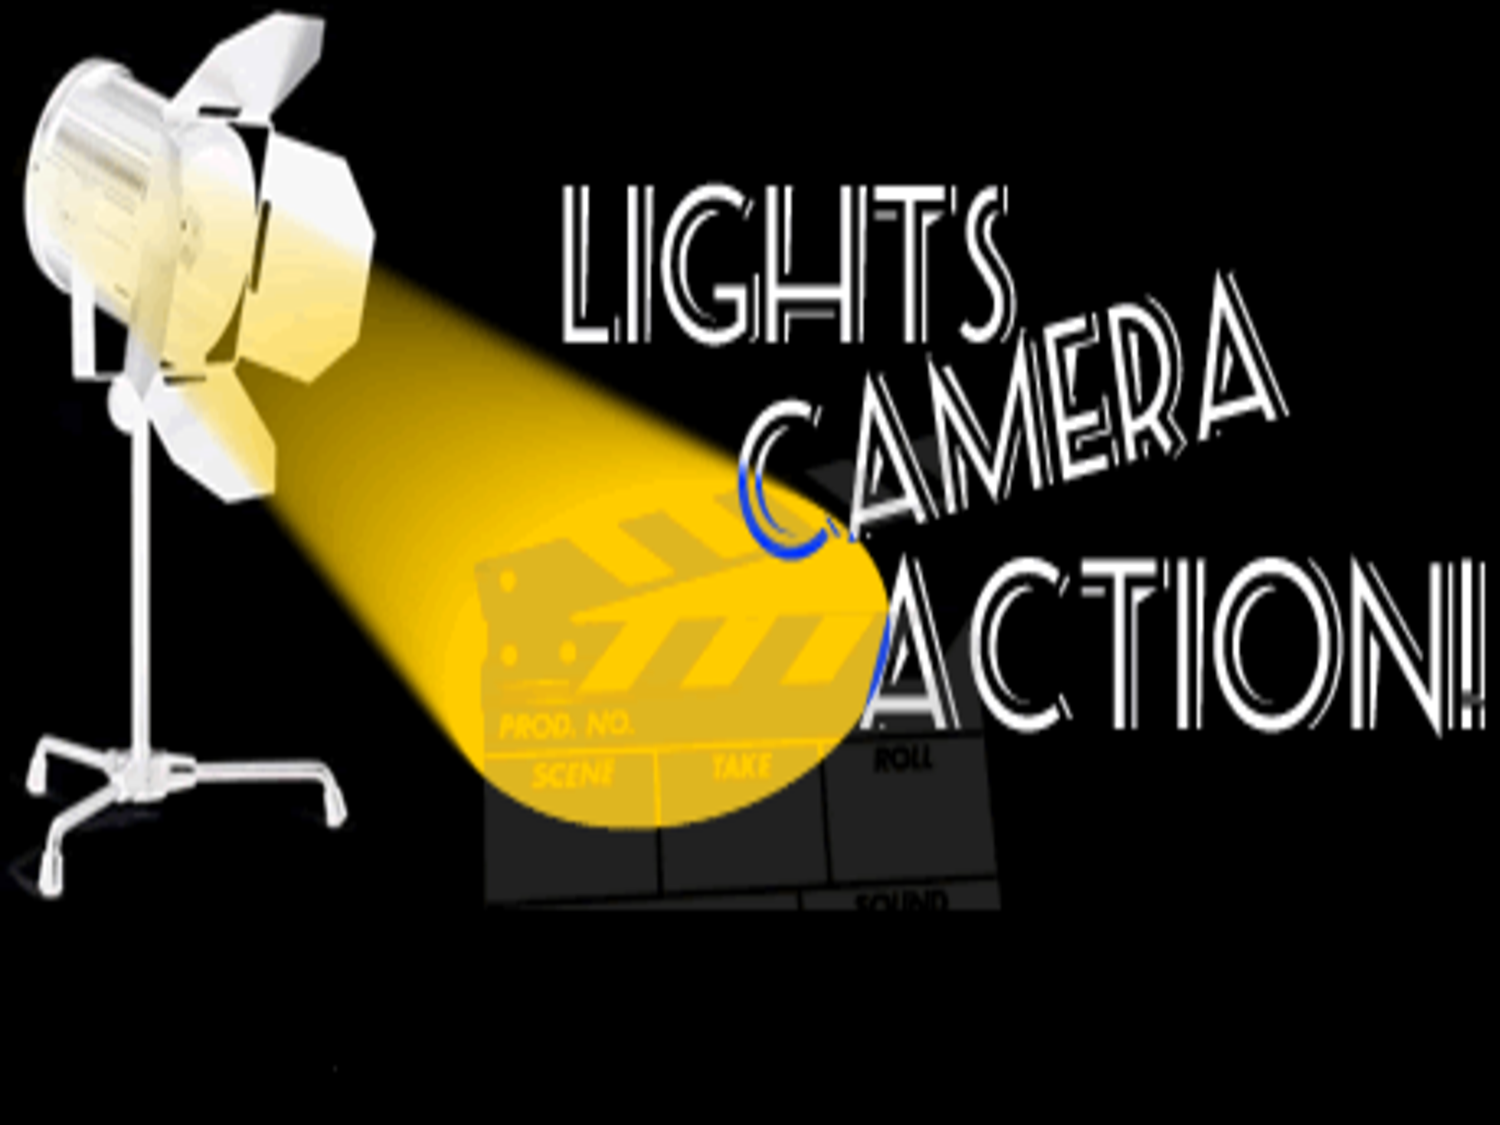 Action clipart lights camera action. Region s top track